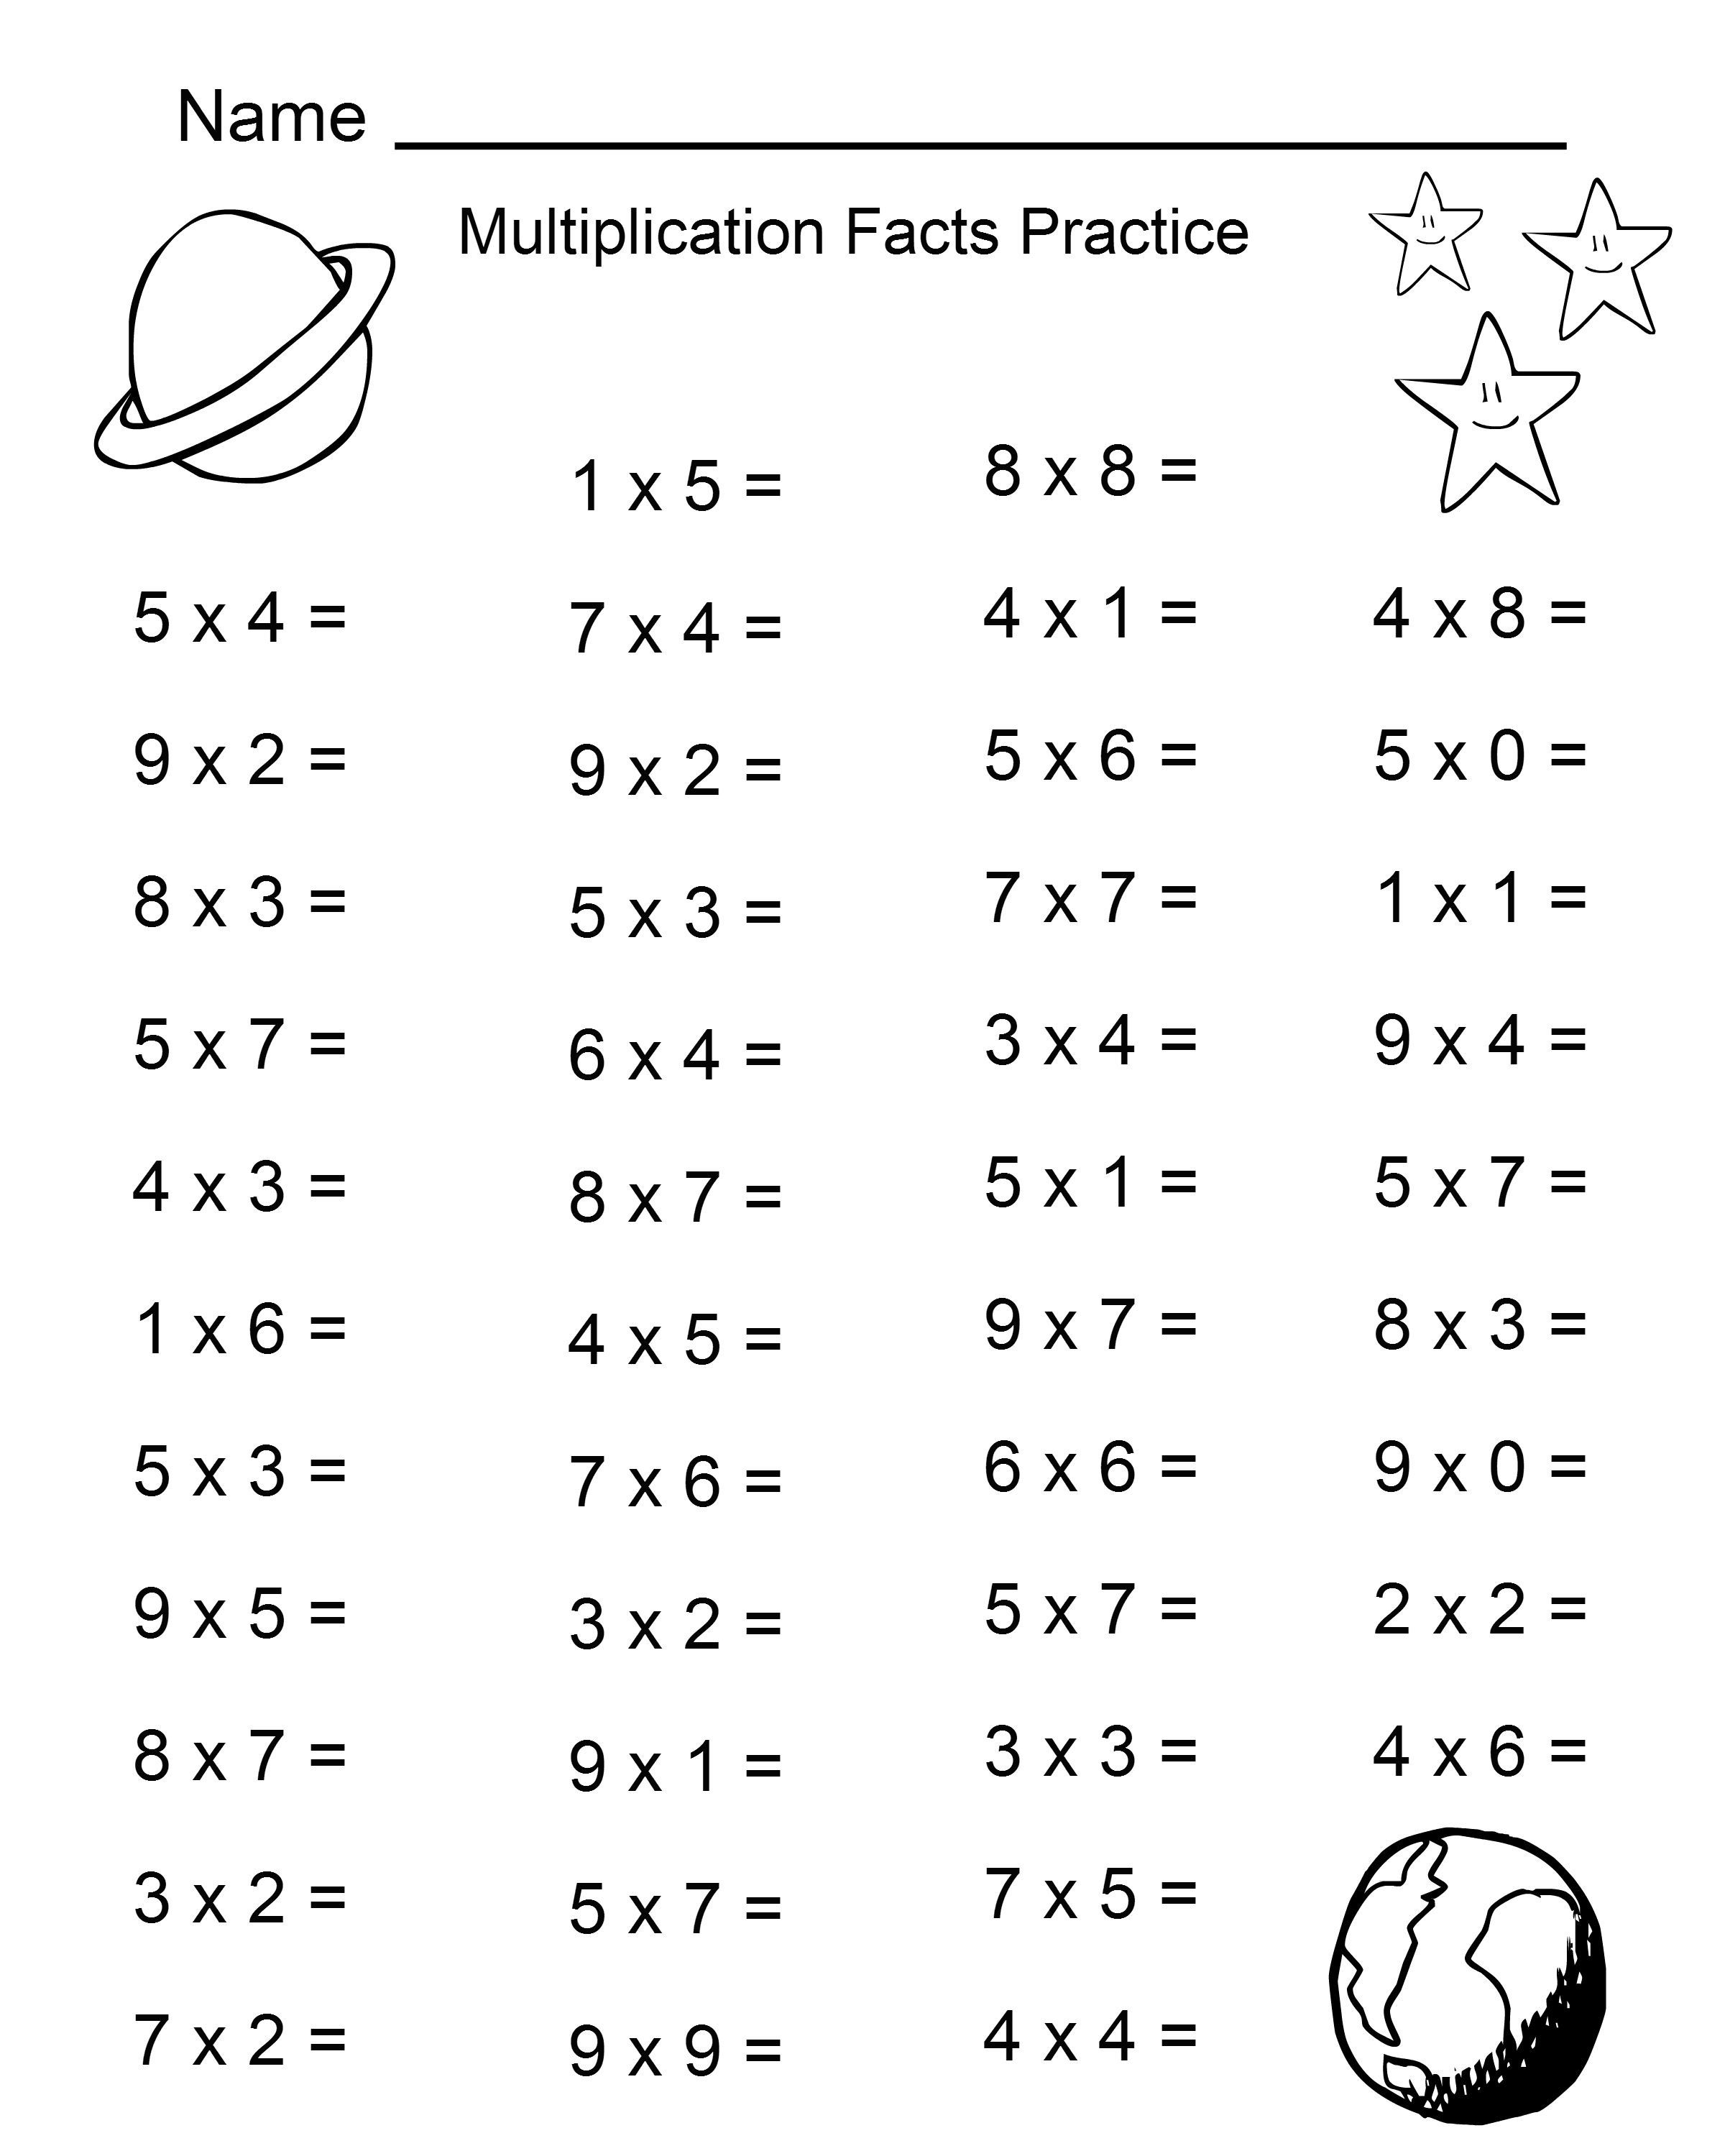 Multiplication Worksheets For Students